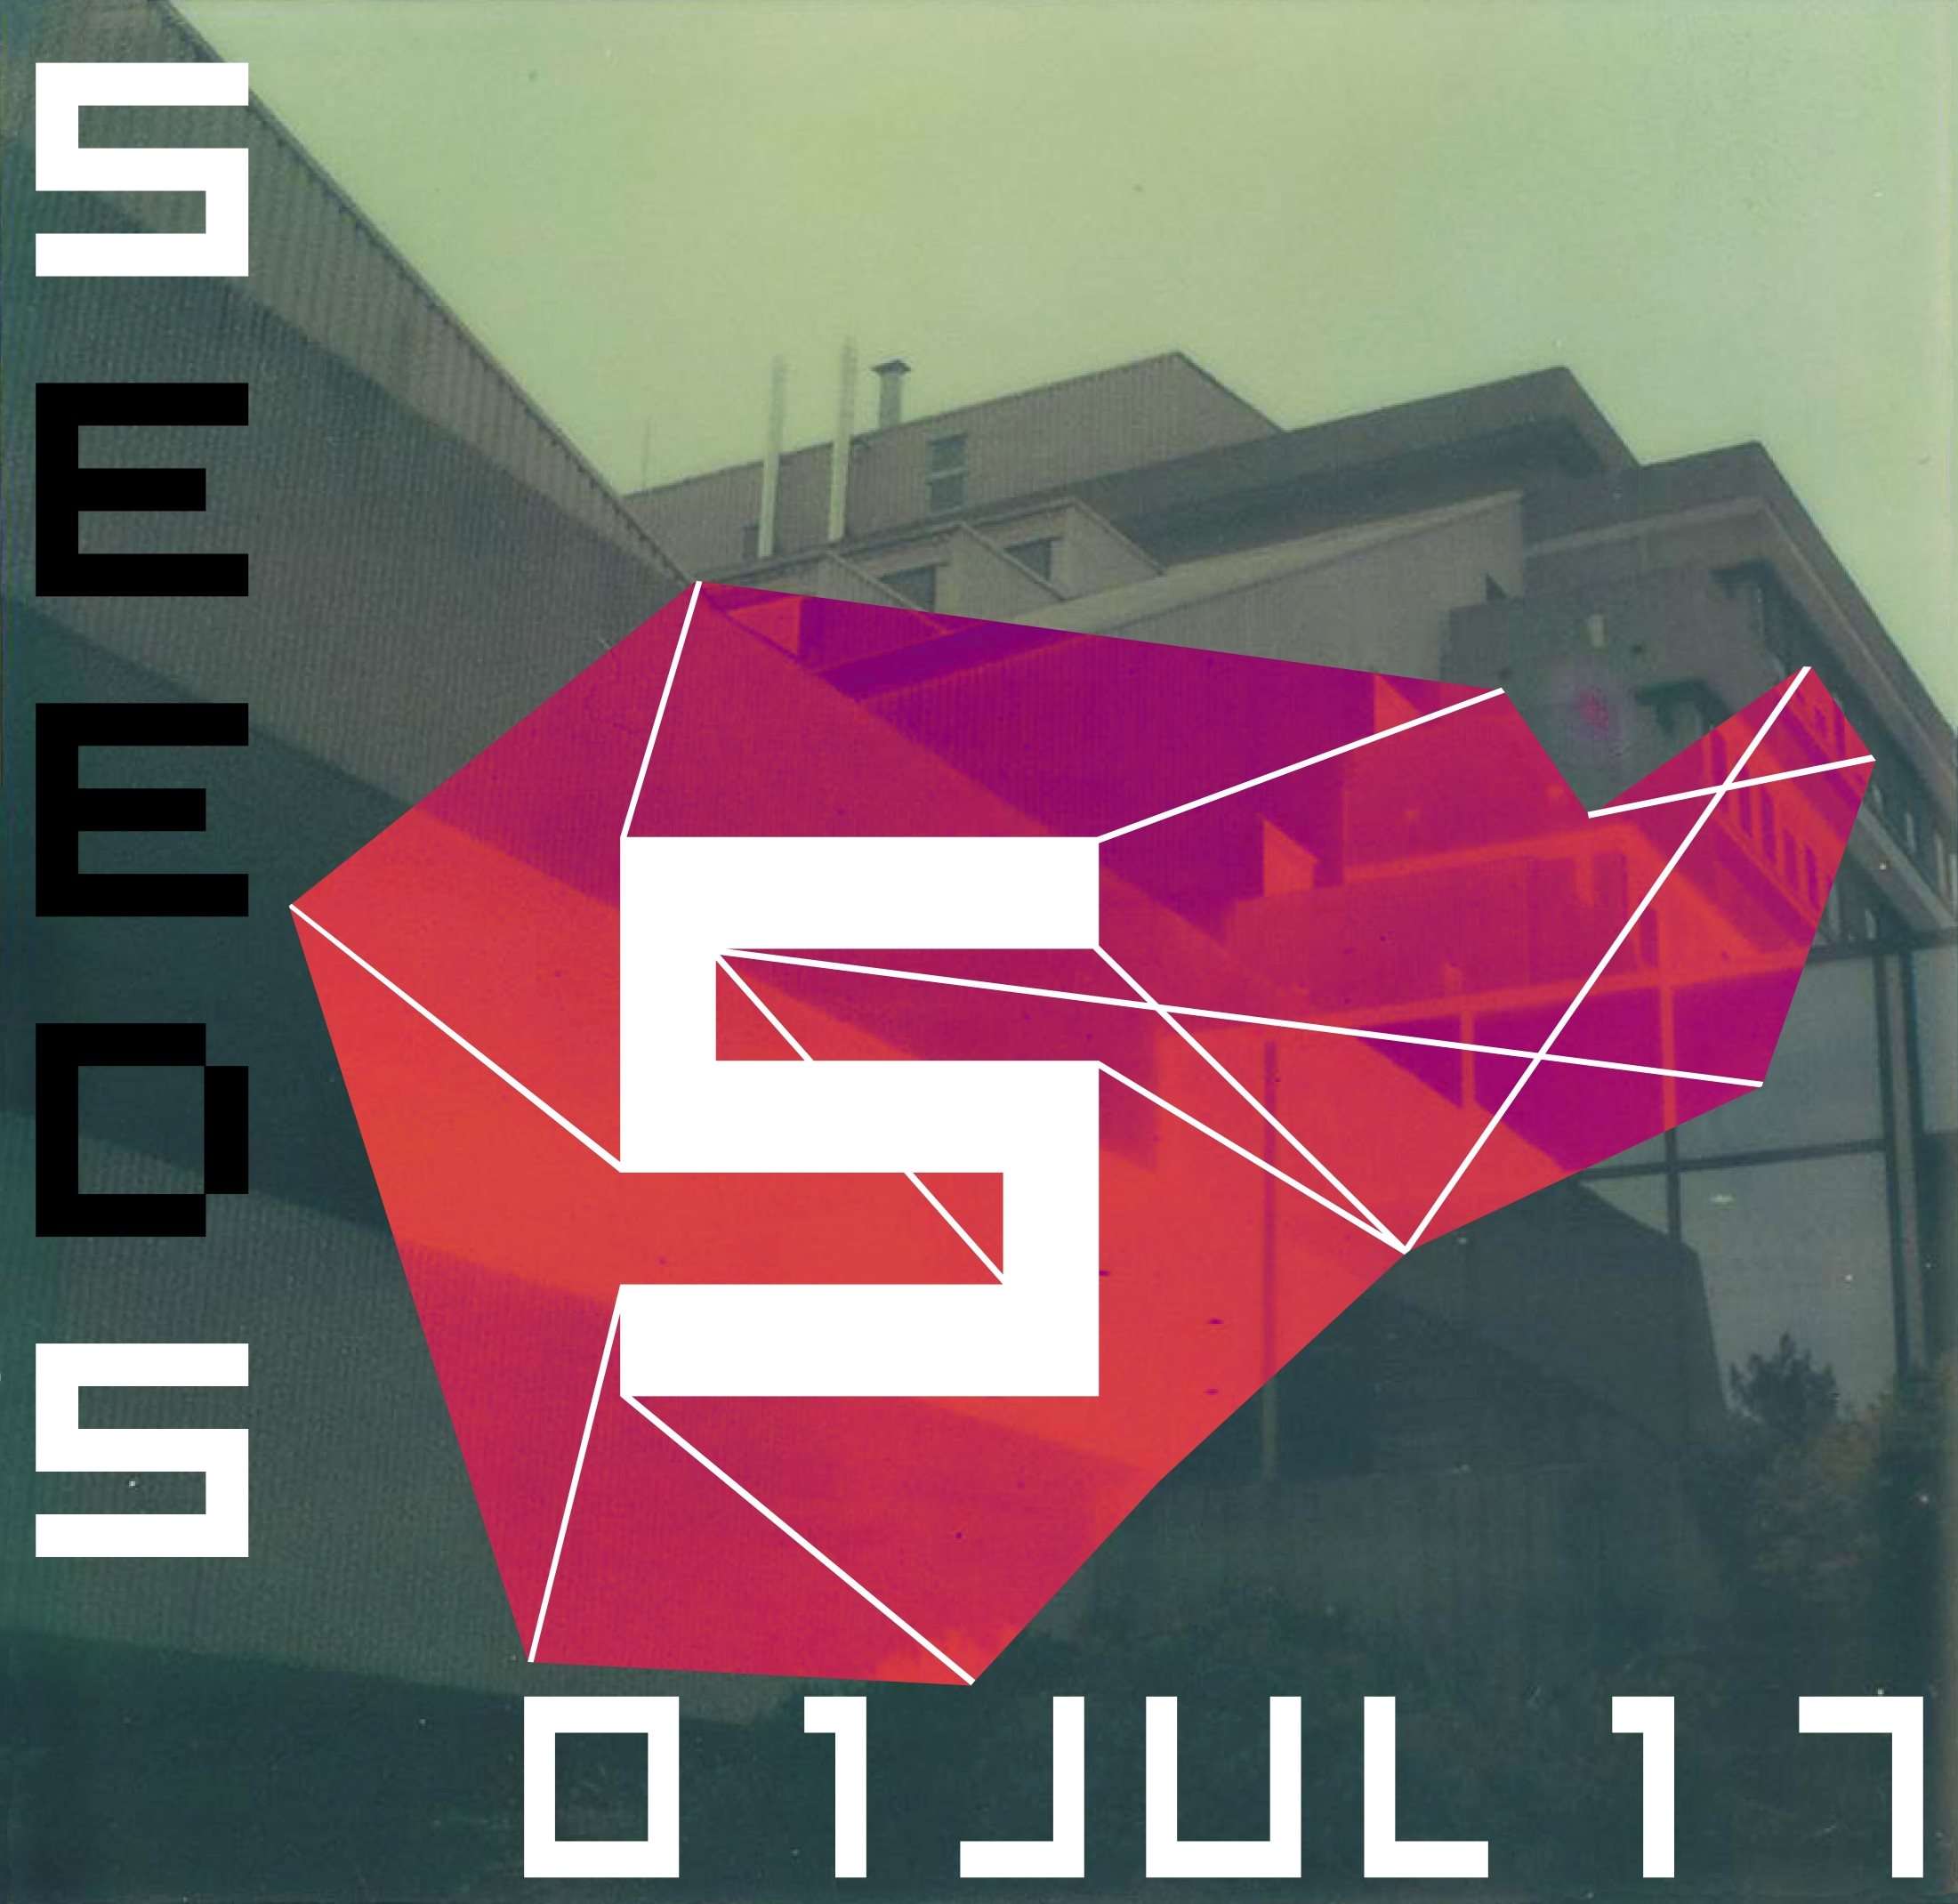 SEEDS 01JUL17 - Cholet